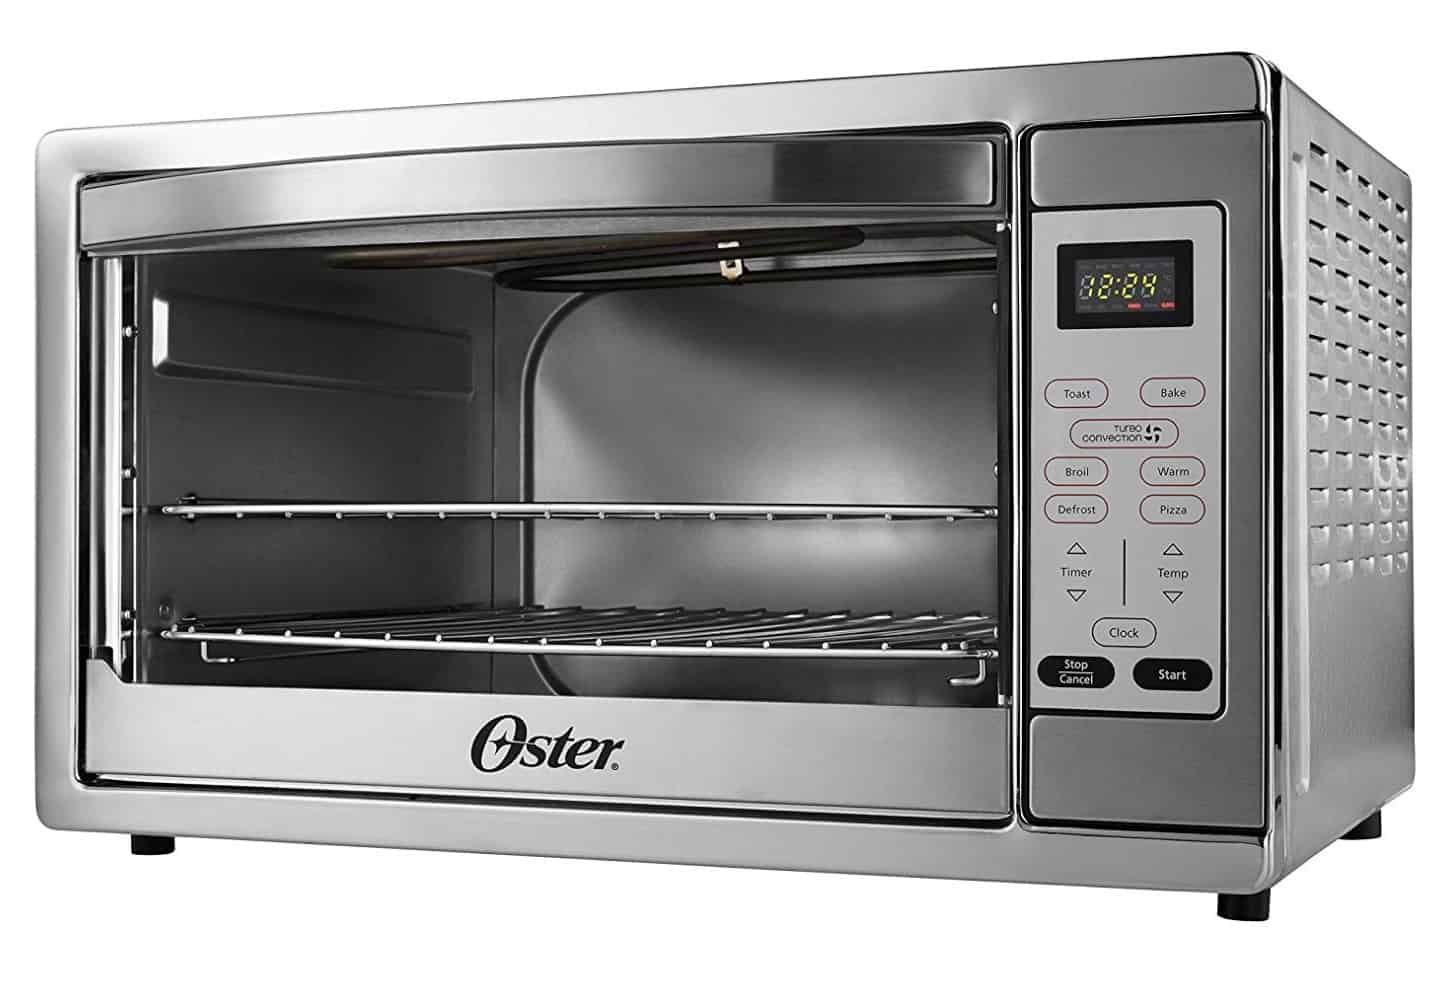 17 Types Of Oven You Need To Know Before Purchase Countertop Oven Steam Oven Cooking Steam Oven